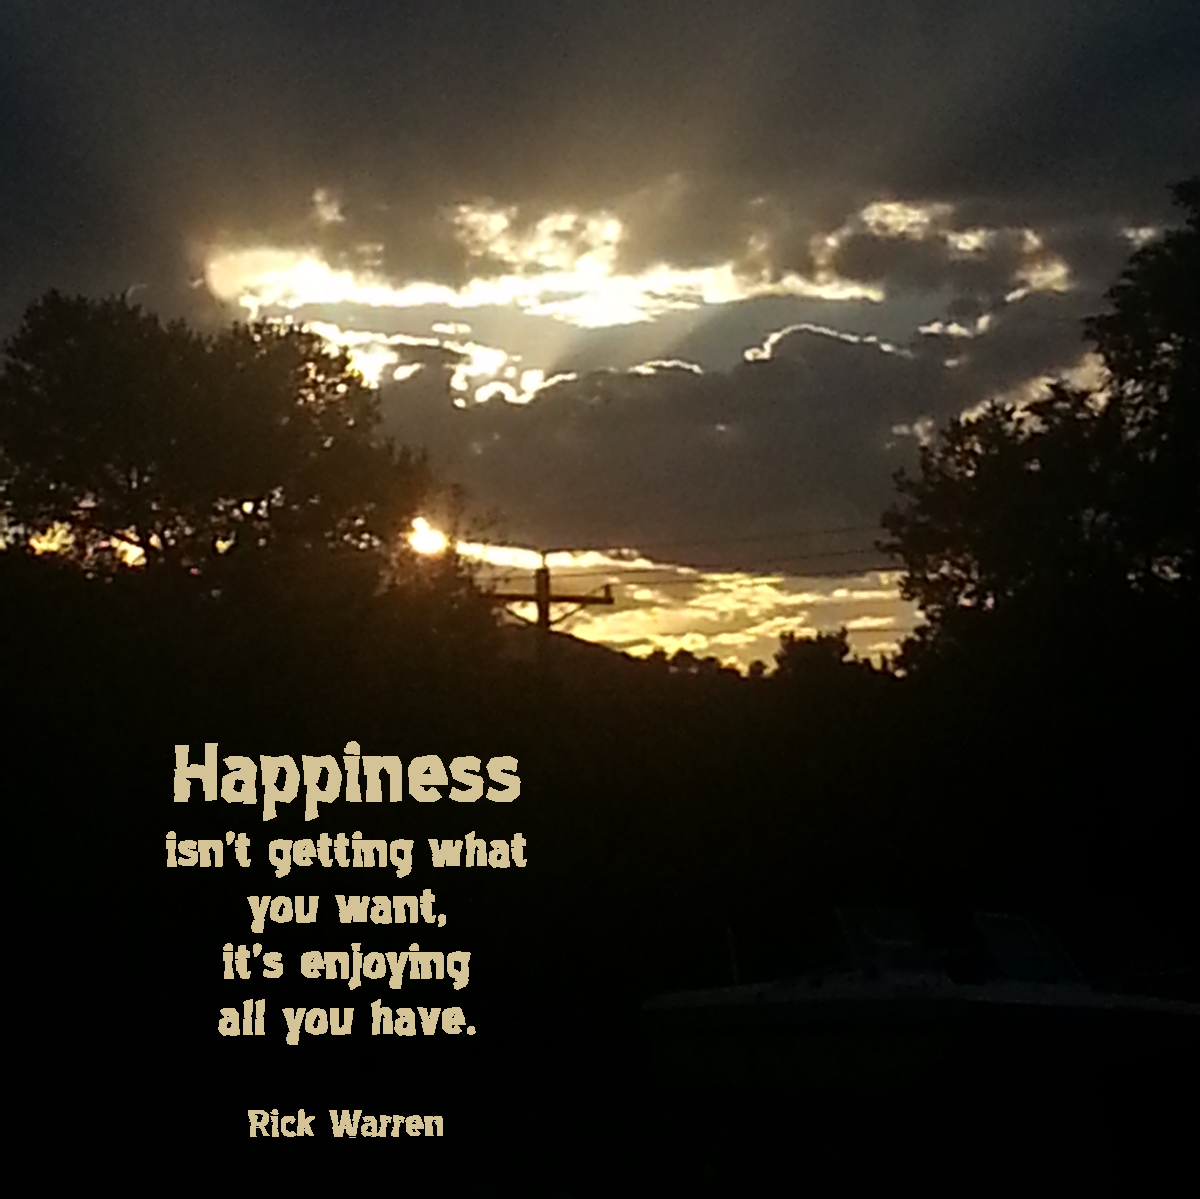 Happiness by Rick Warren